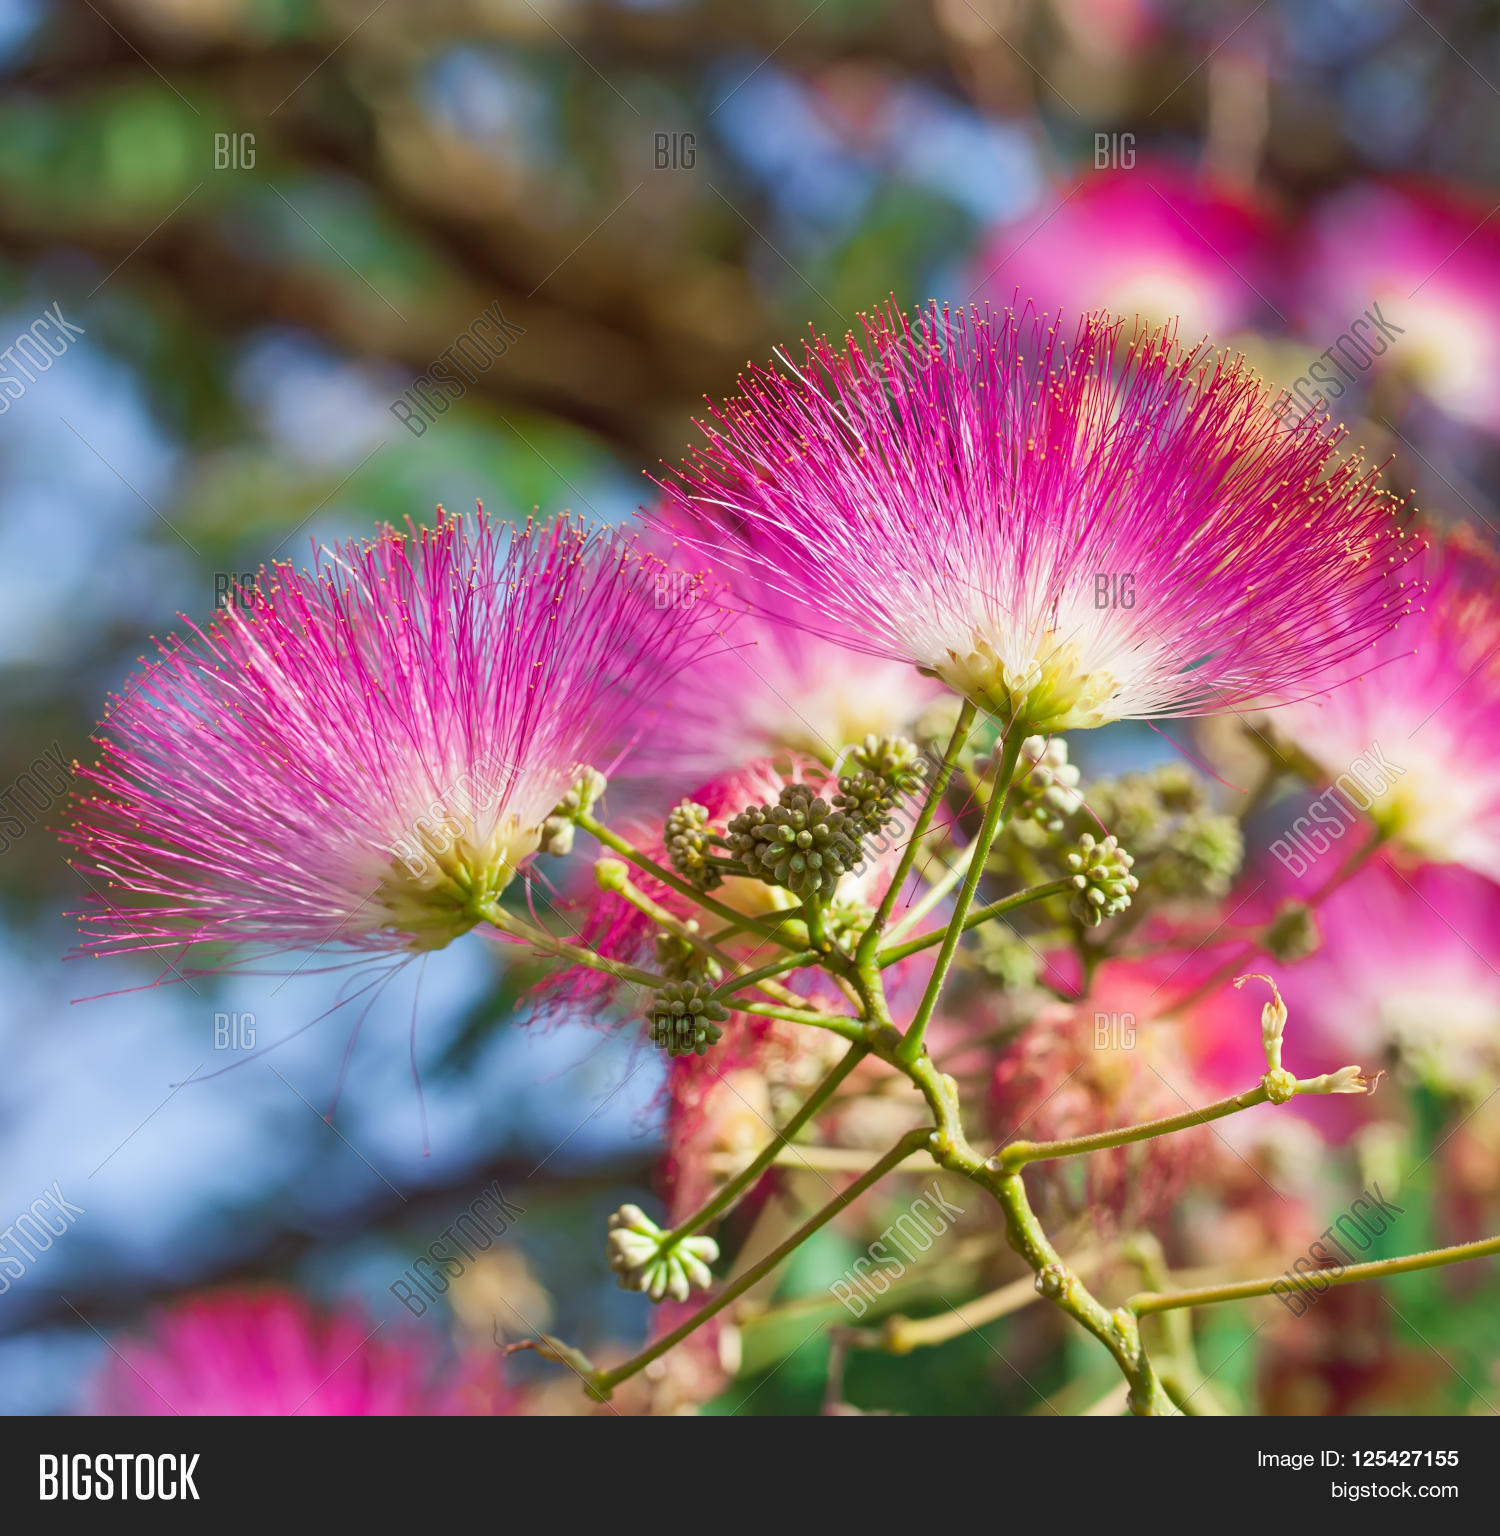 Beautiful Pink Flowers Image Photo Free Trial Bigstock